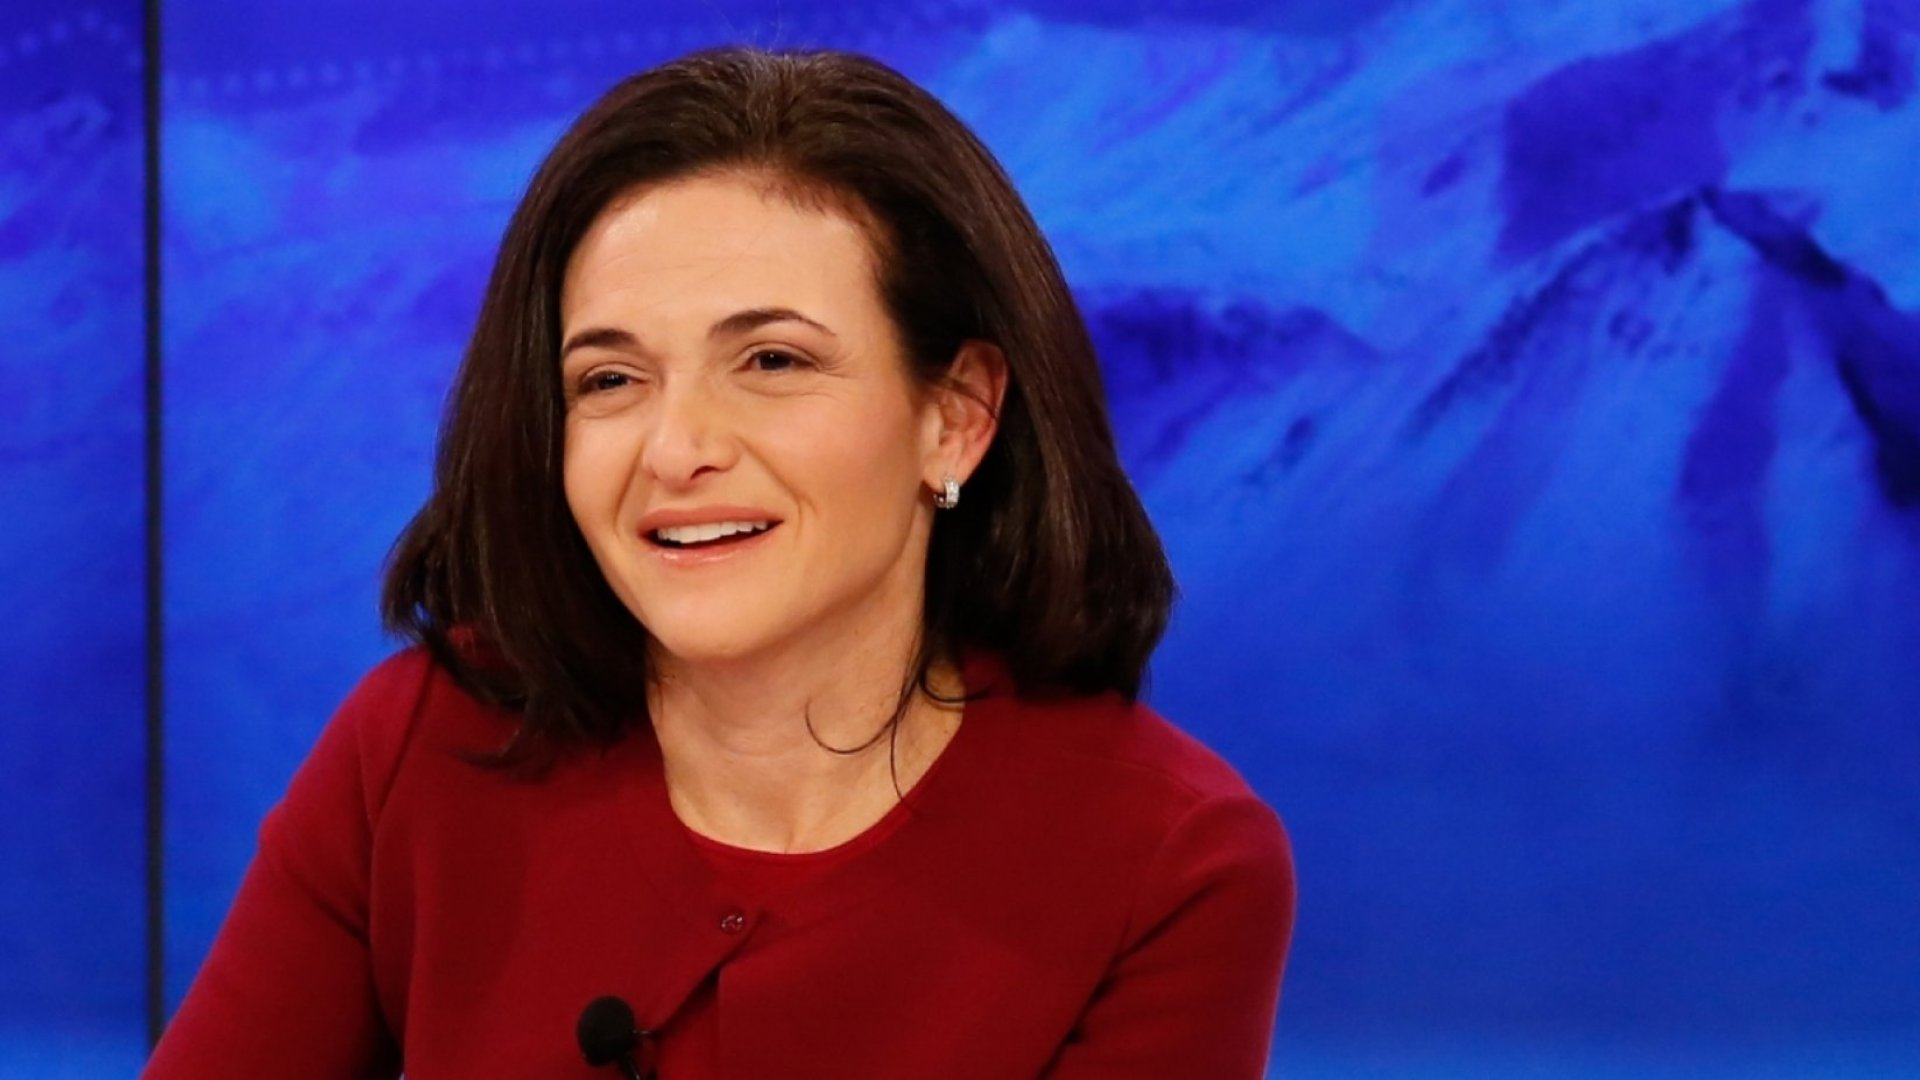 Sheryl Sandberg's 'Lean In' Strategy May Have Mixed Results for Women, According to Duke Professors